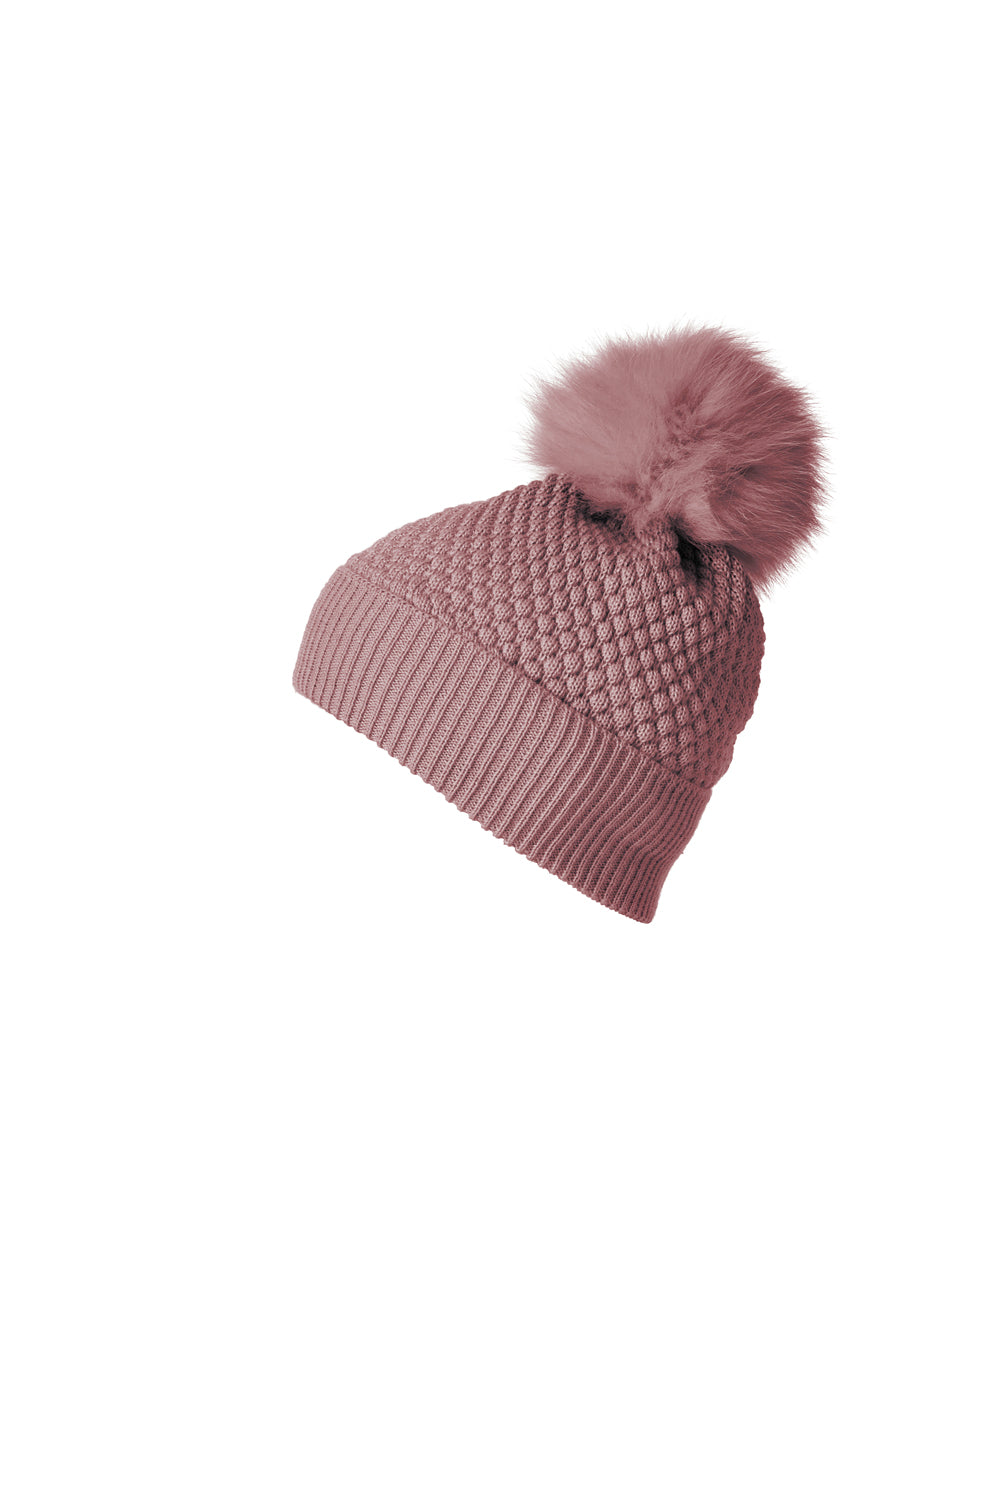 MP 96700-870 Oslo beanie w. fur rose-MP-Hoofers - We love shoes